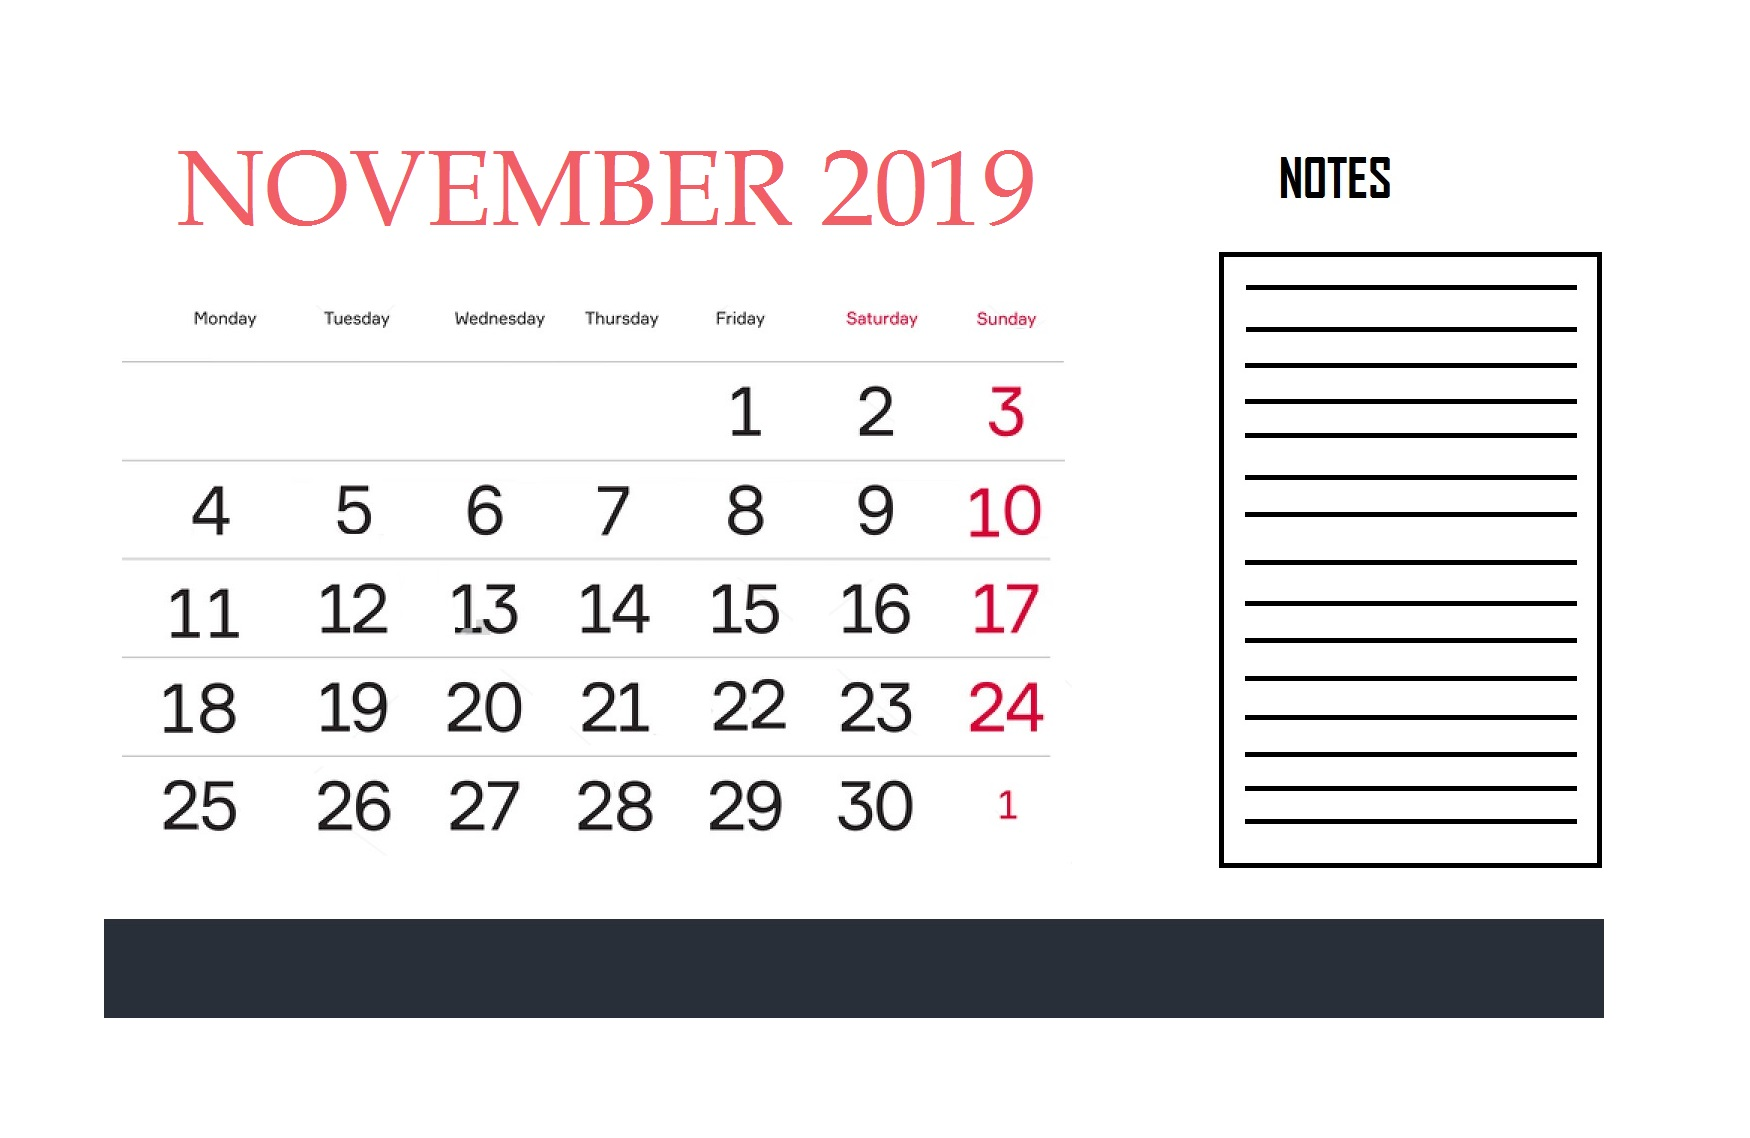 November Kalender 2019 mit Notizen